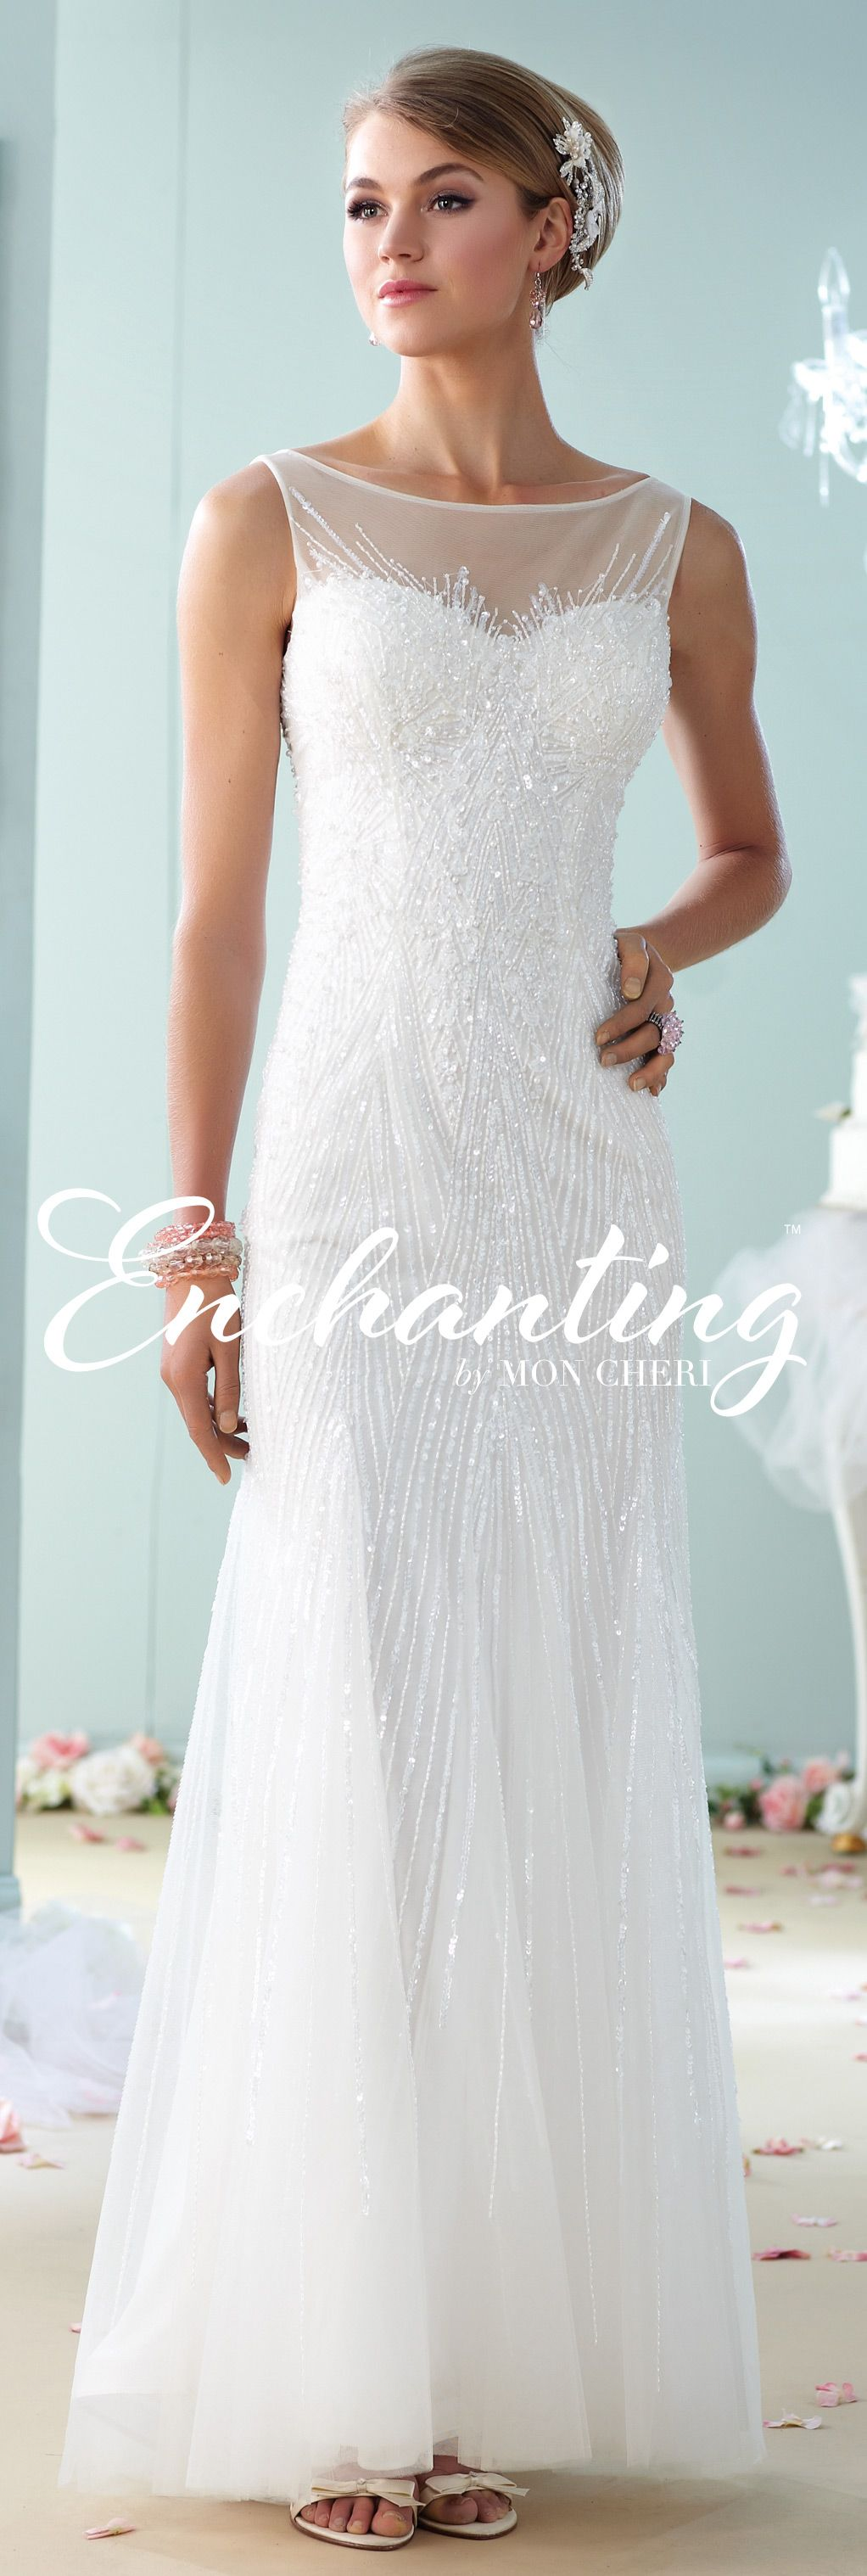 Modern wedding dresses by mon cheri enchanted collection and